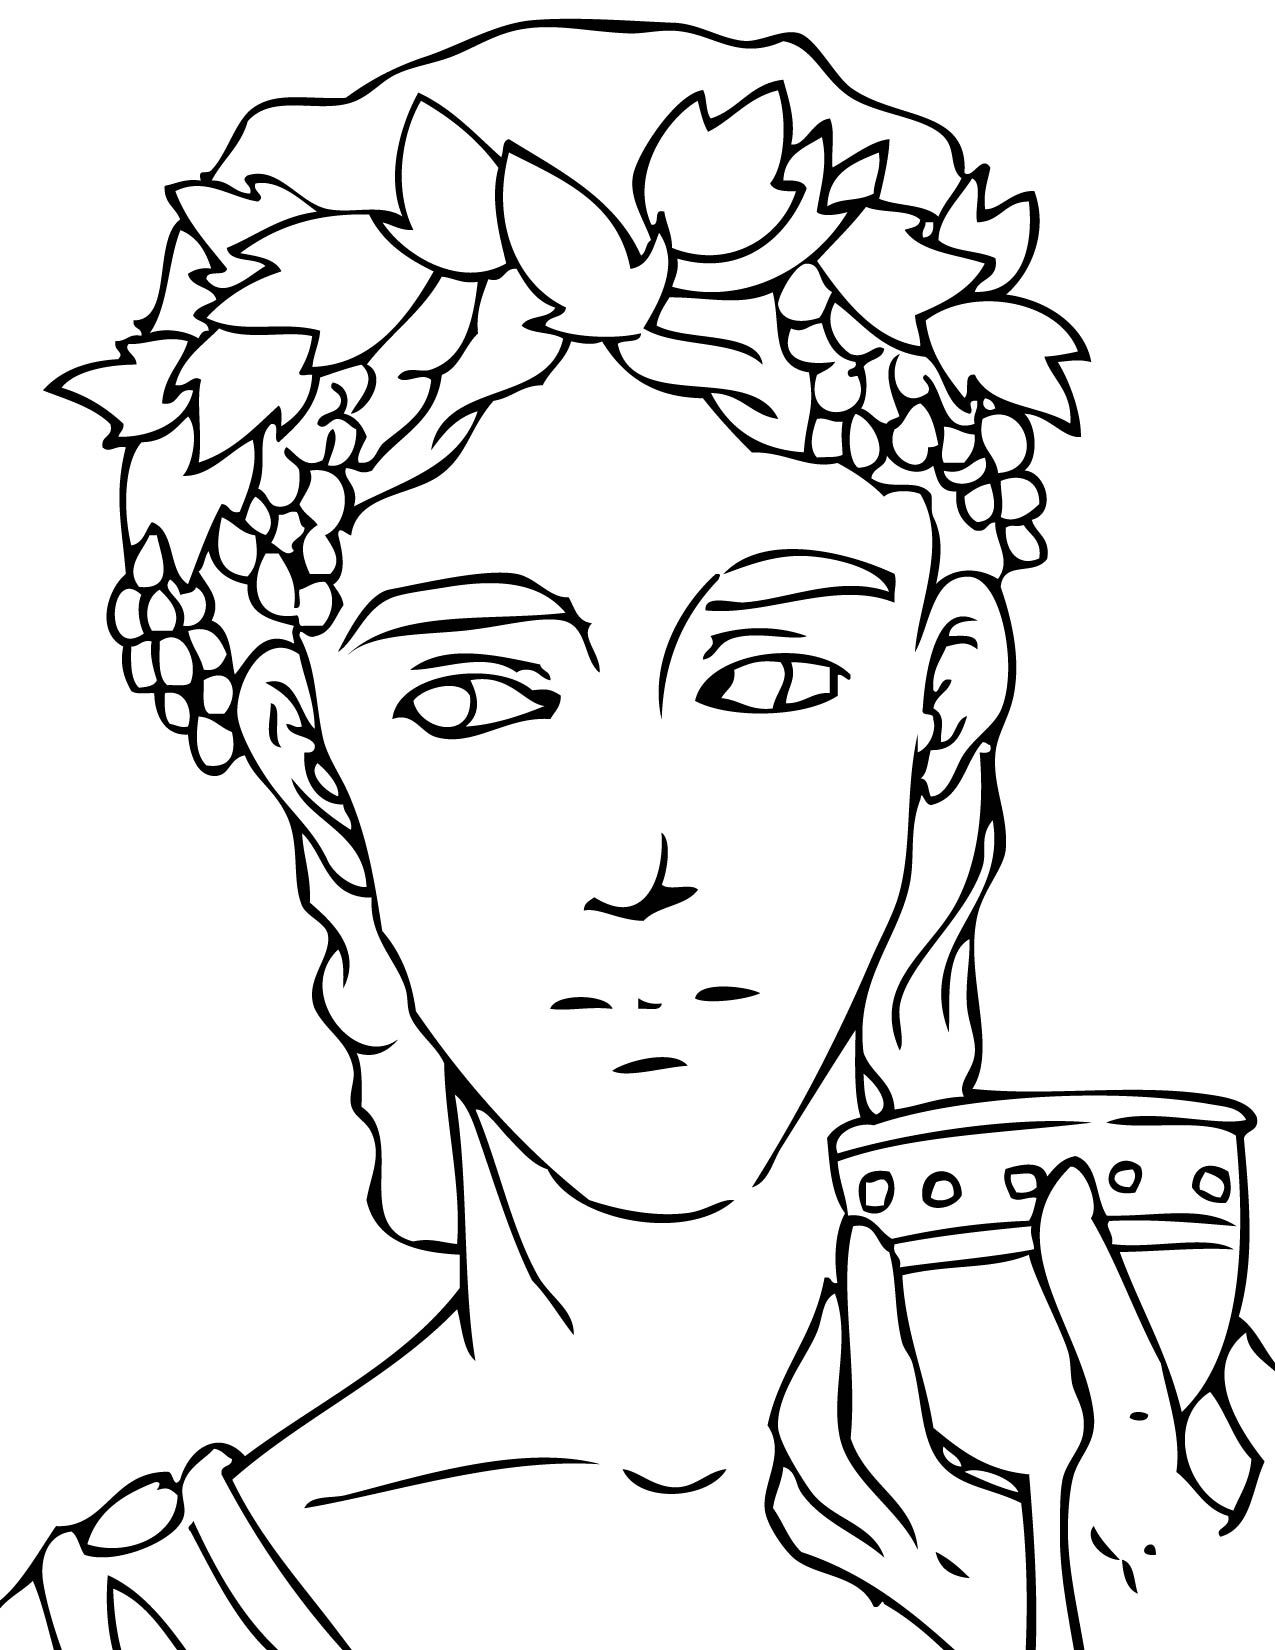 Demeter Coloring Pages To Print